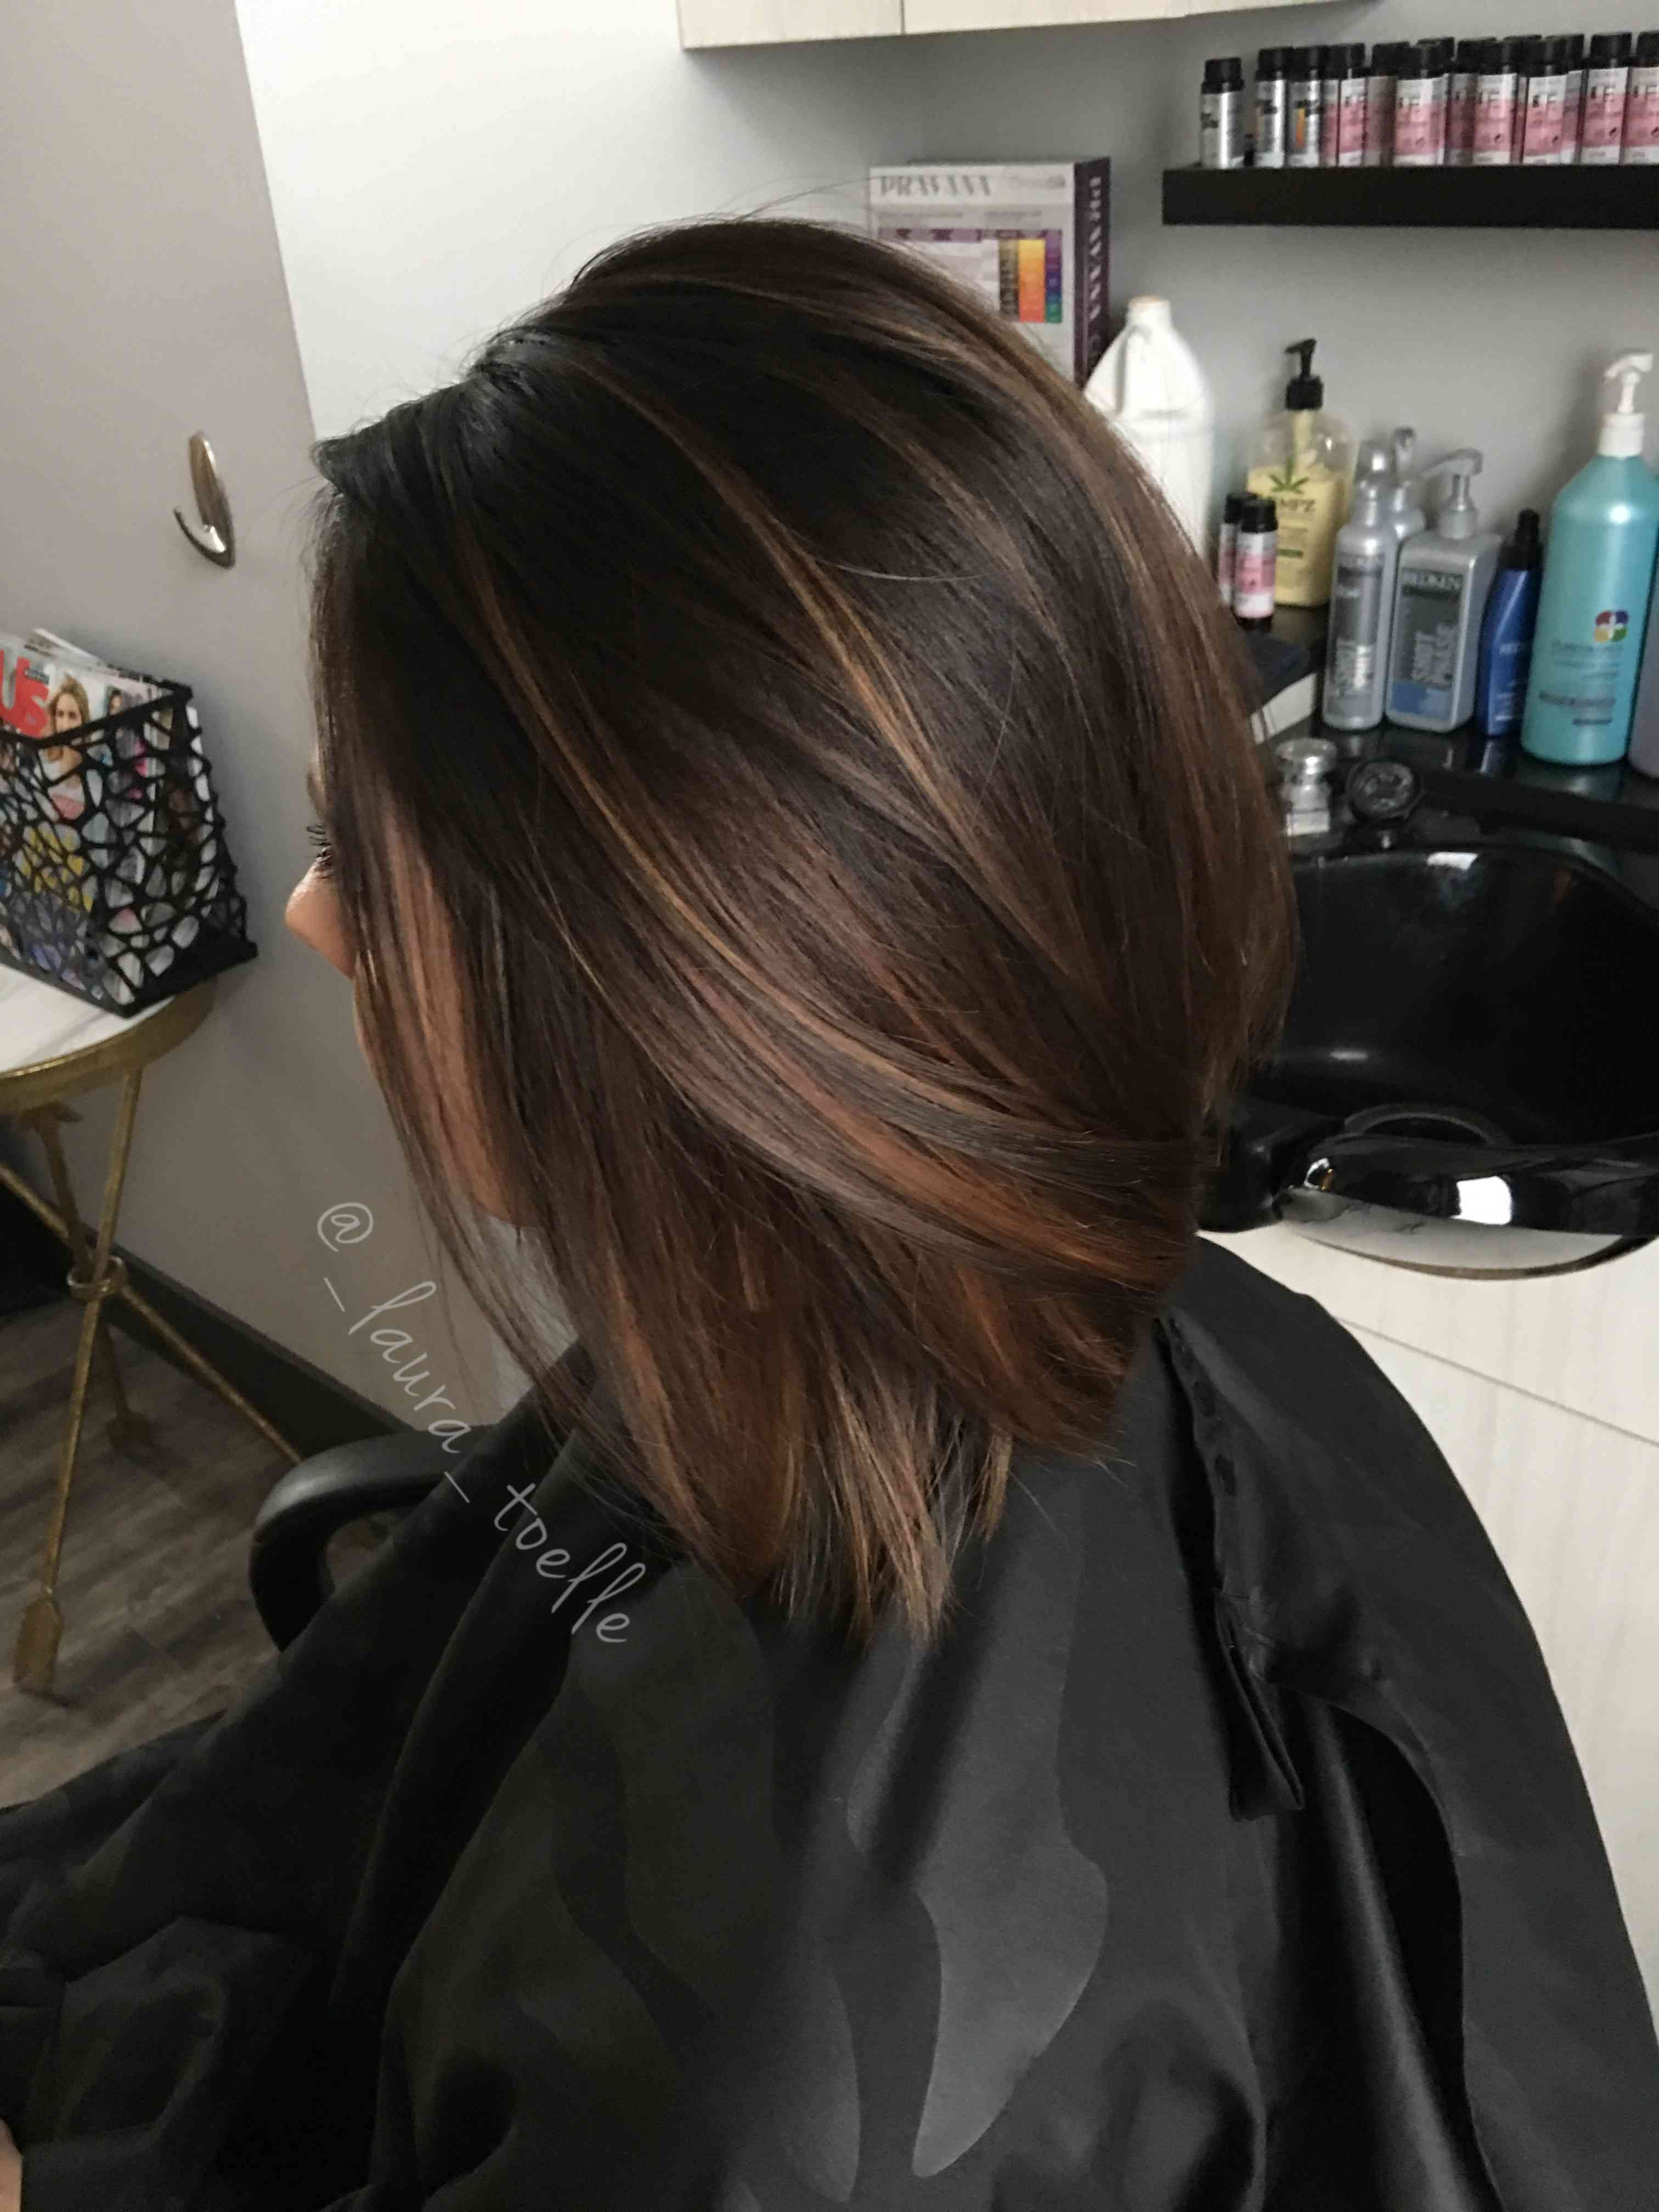 Image Result For Dark Brown Hair With Caramel Highlights Before And After Hair Styles Brown Hair With Highlights Highlights For Dark Brown Hair